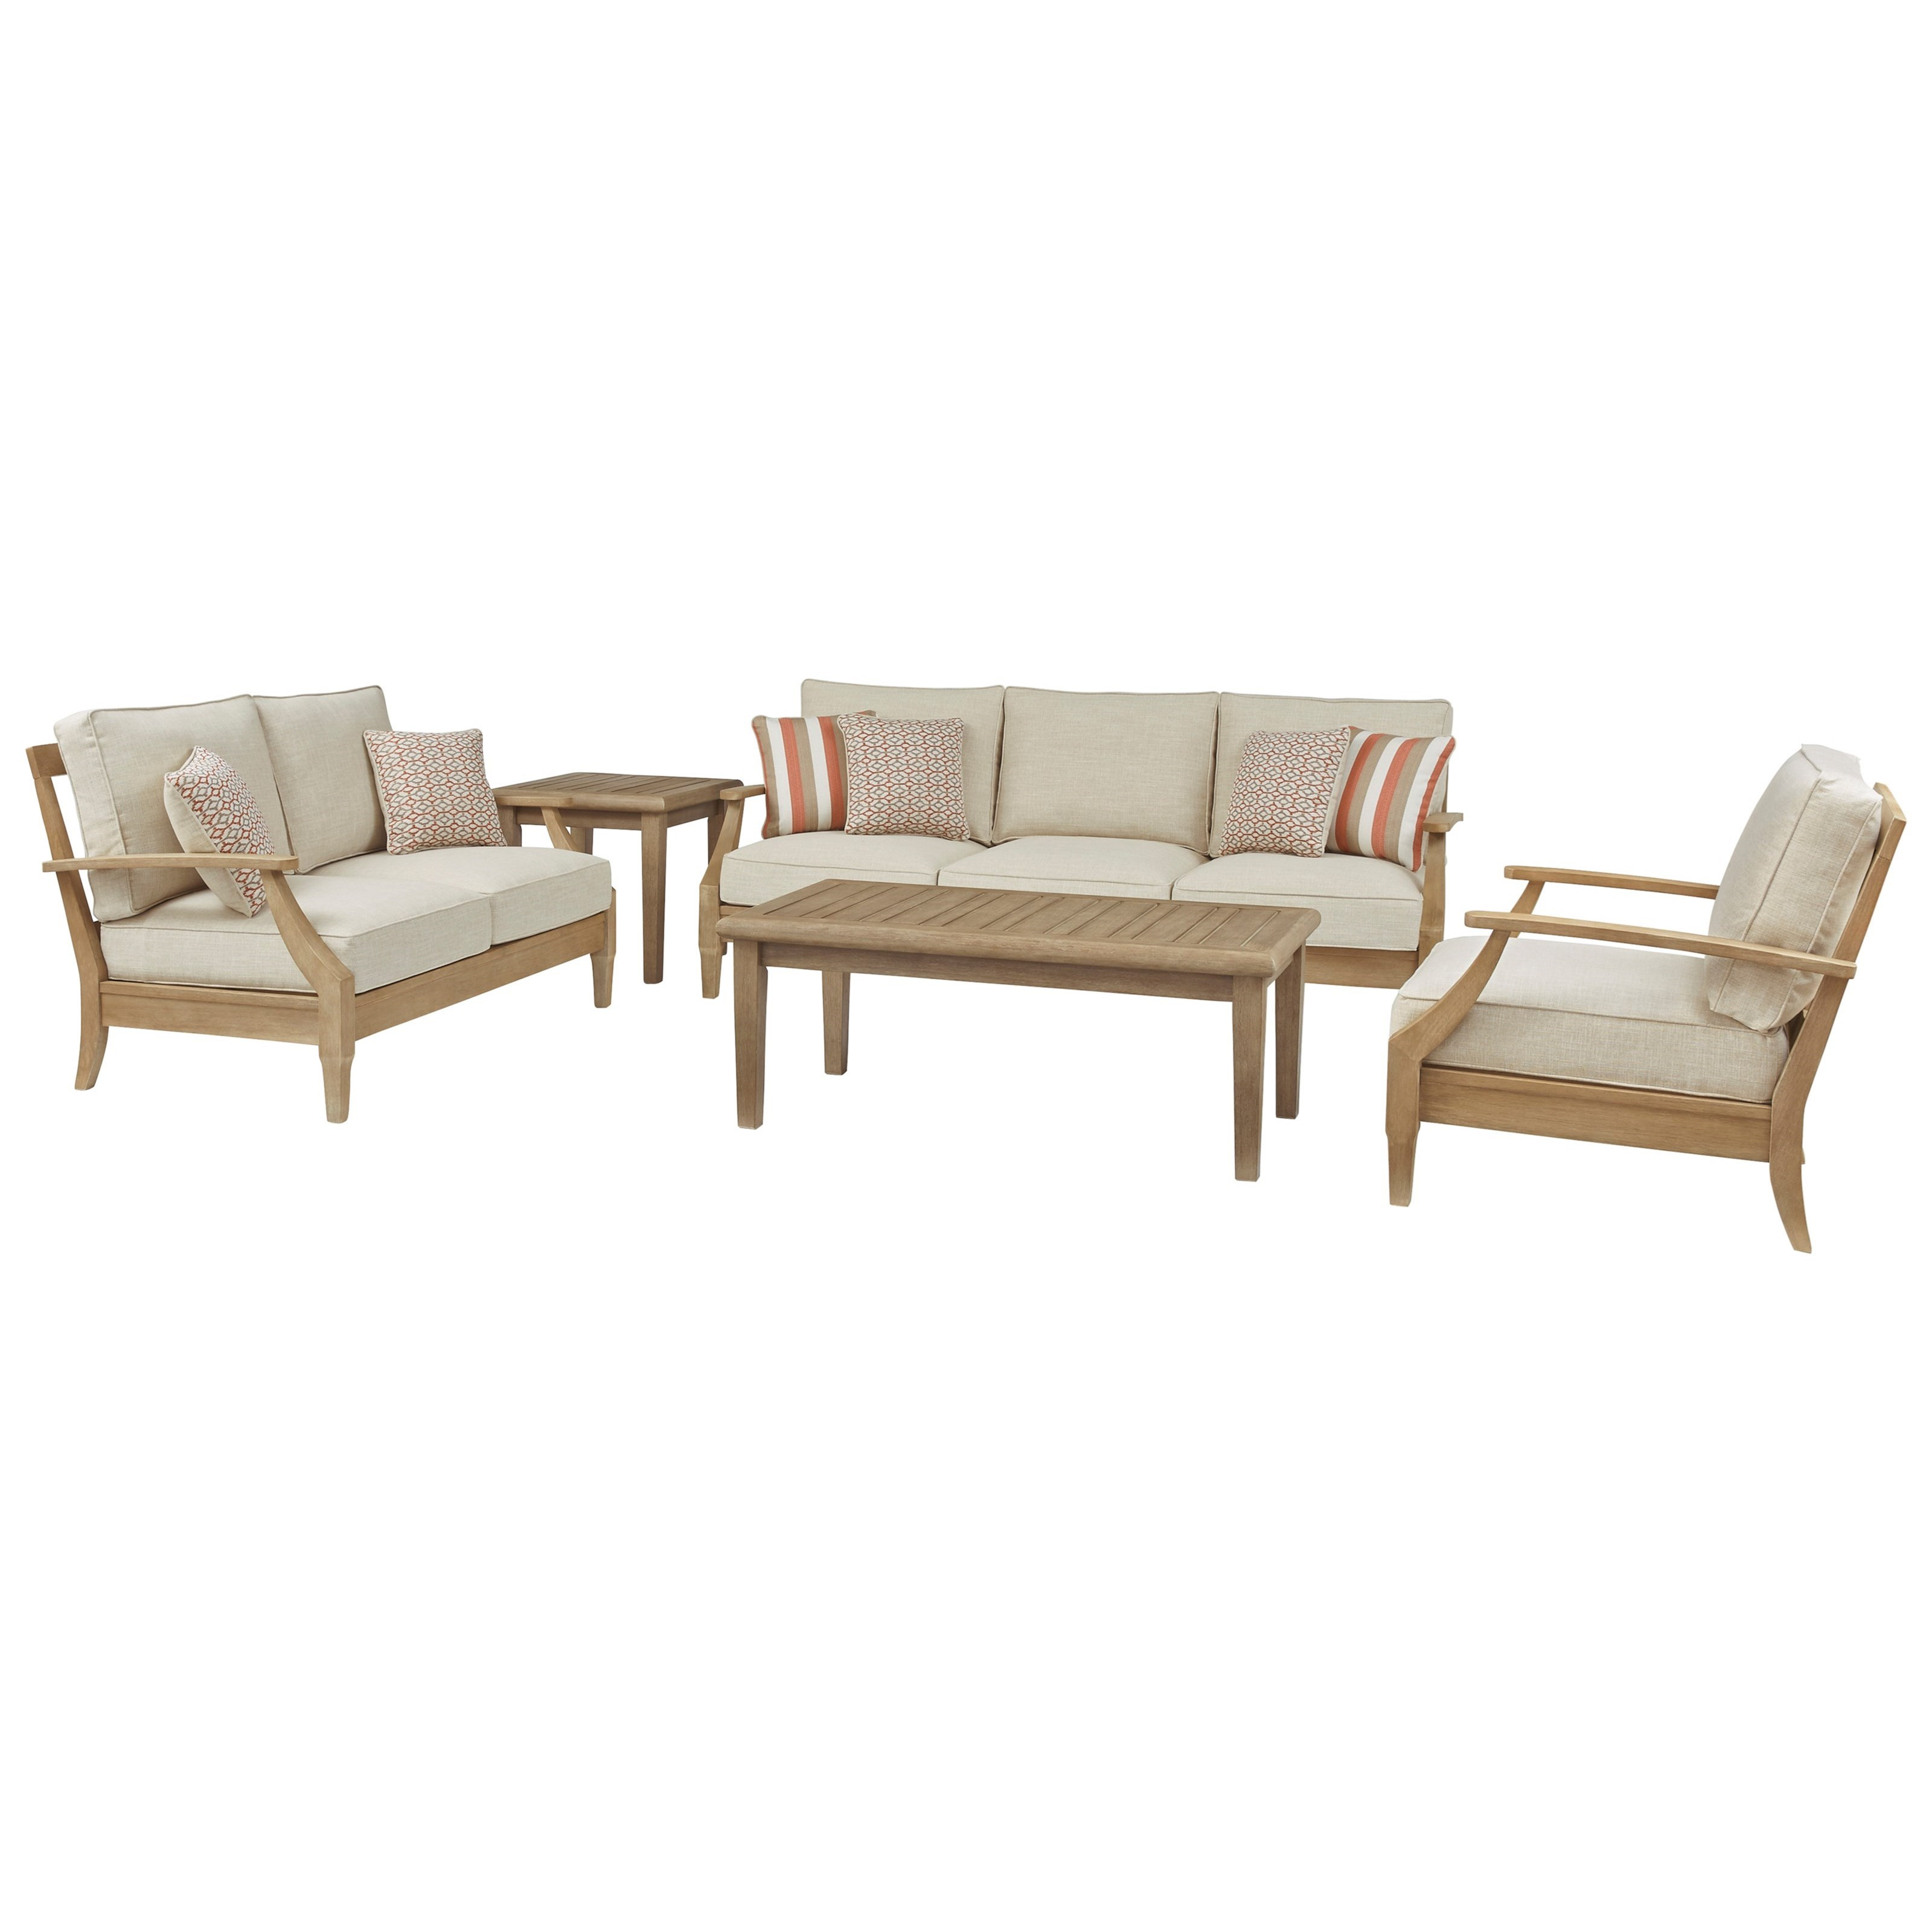 Clare View Outdoor Conversation Set by Signature Design by Ashley at HomeWorld Furniture